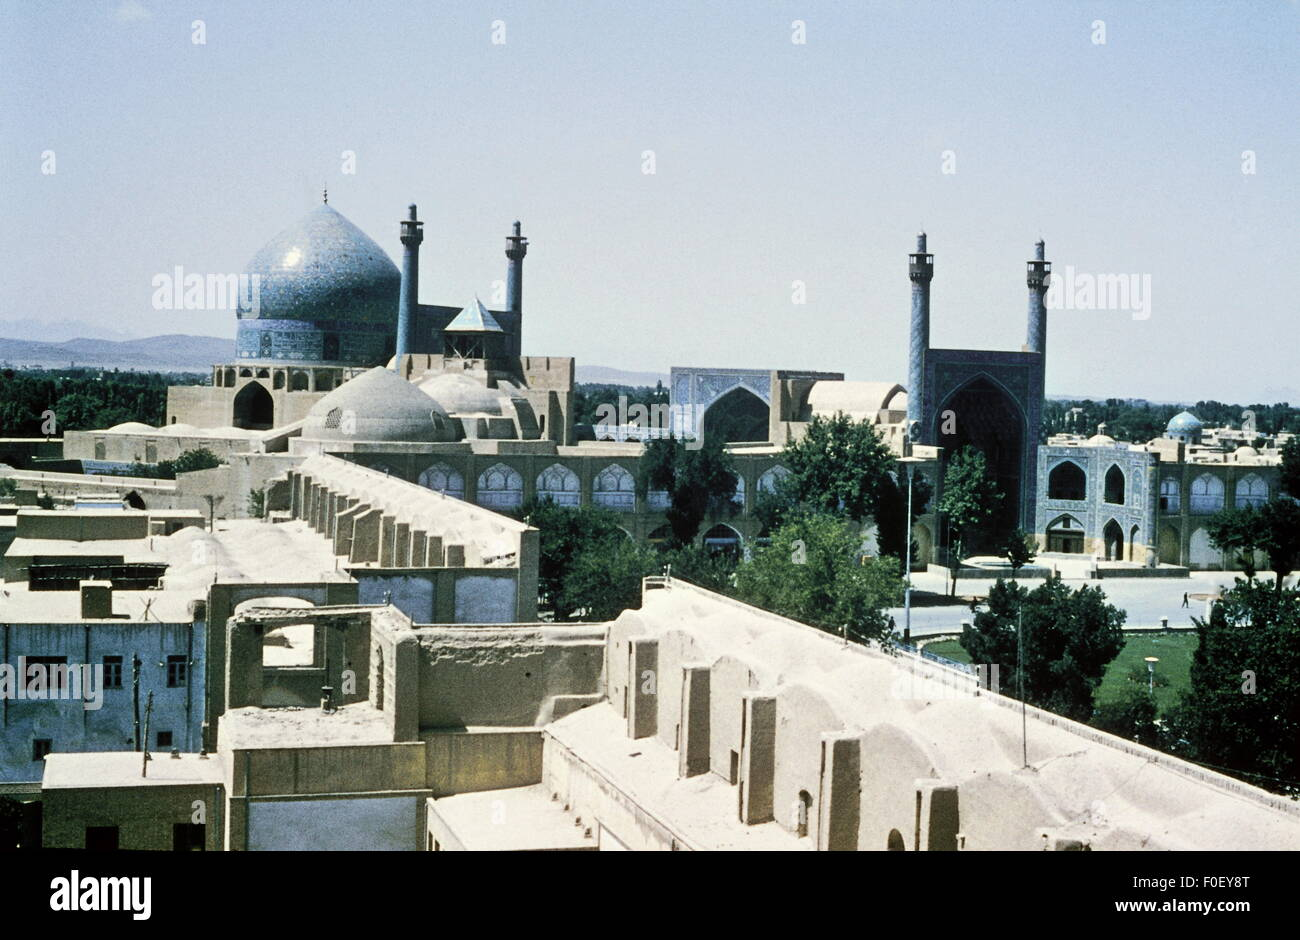 geography / travel, Iran, Esfahan, mosque, Imam Mosque, Naqsh-e Jahan Square, 1960s, Additional-Rights-Clearences - Stock Image